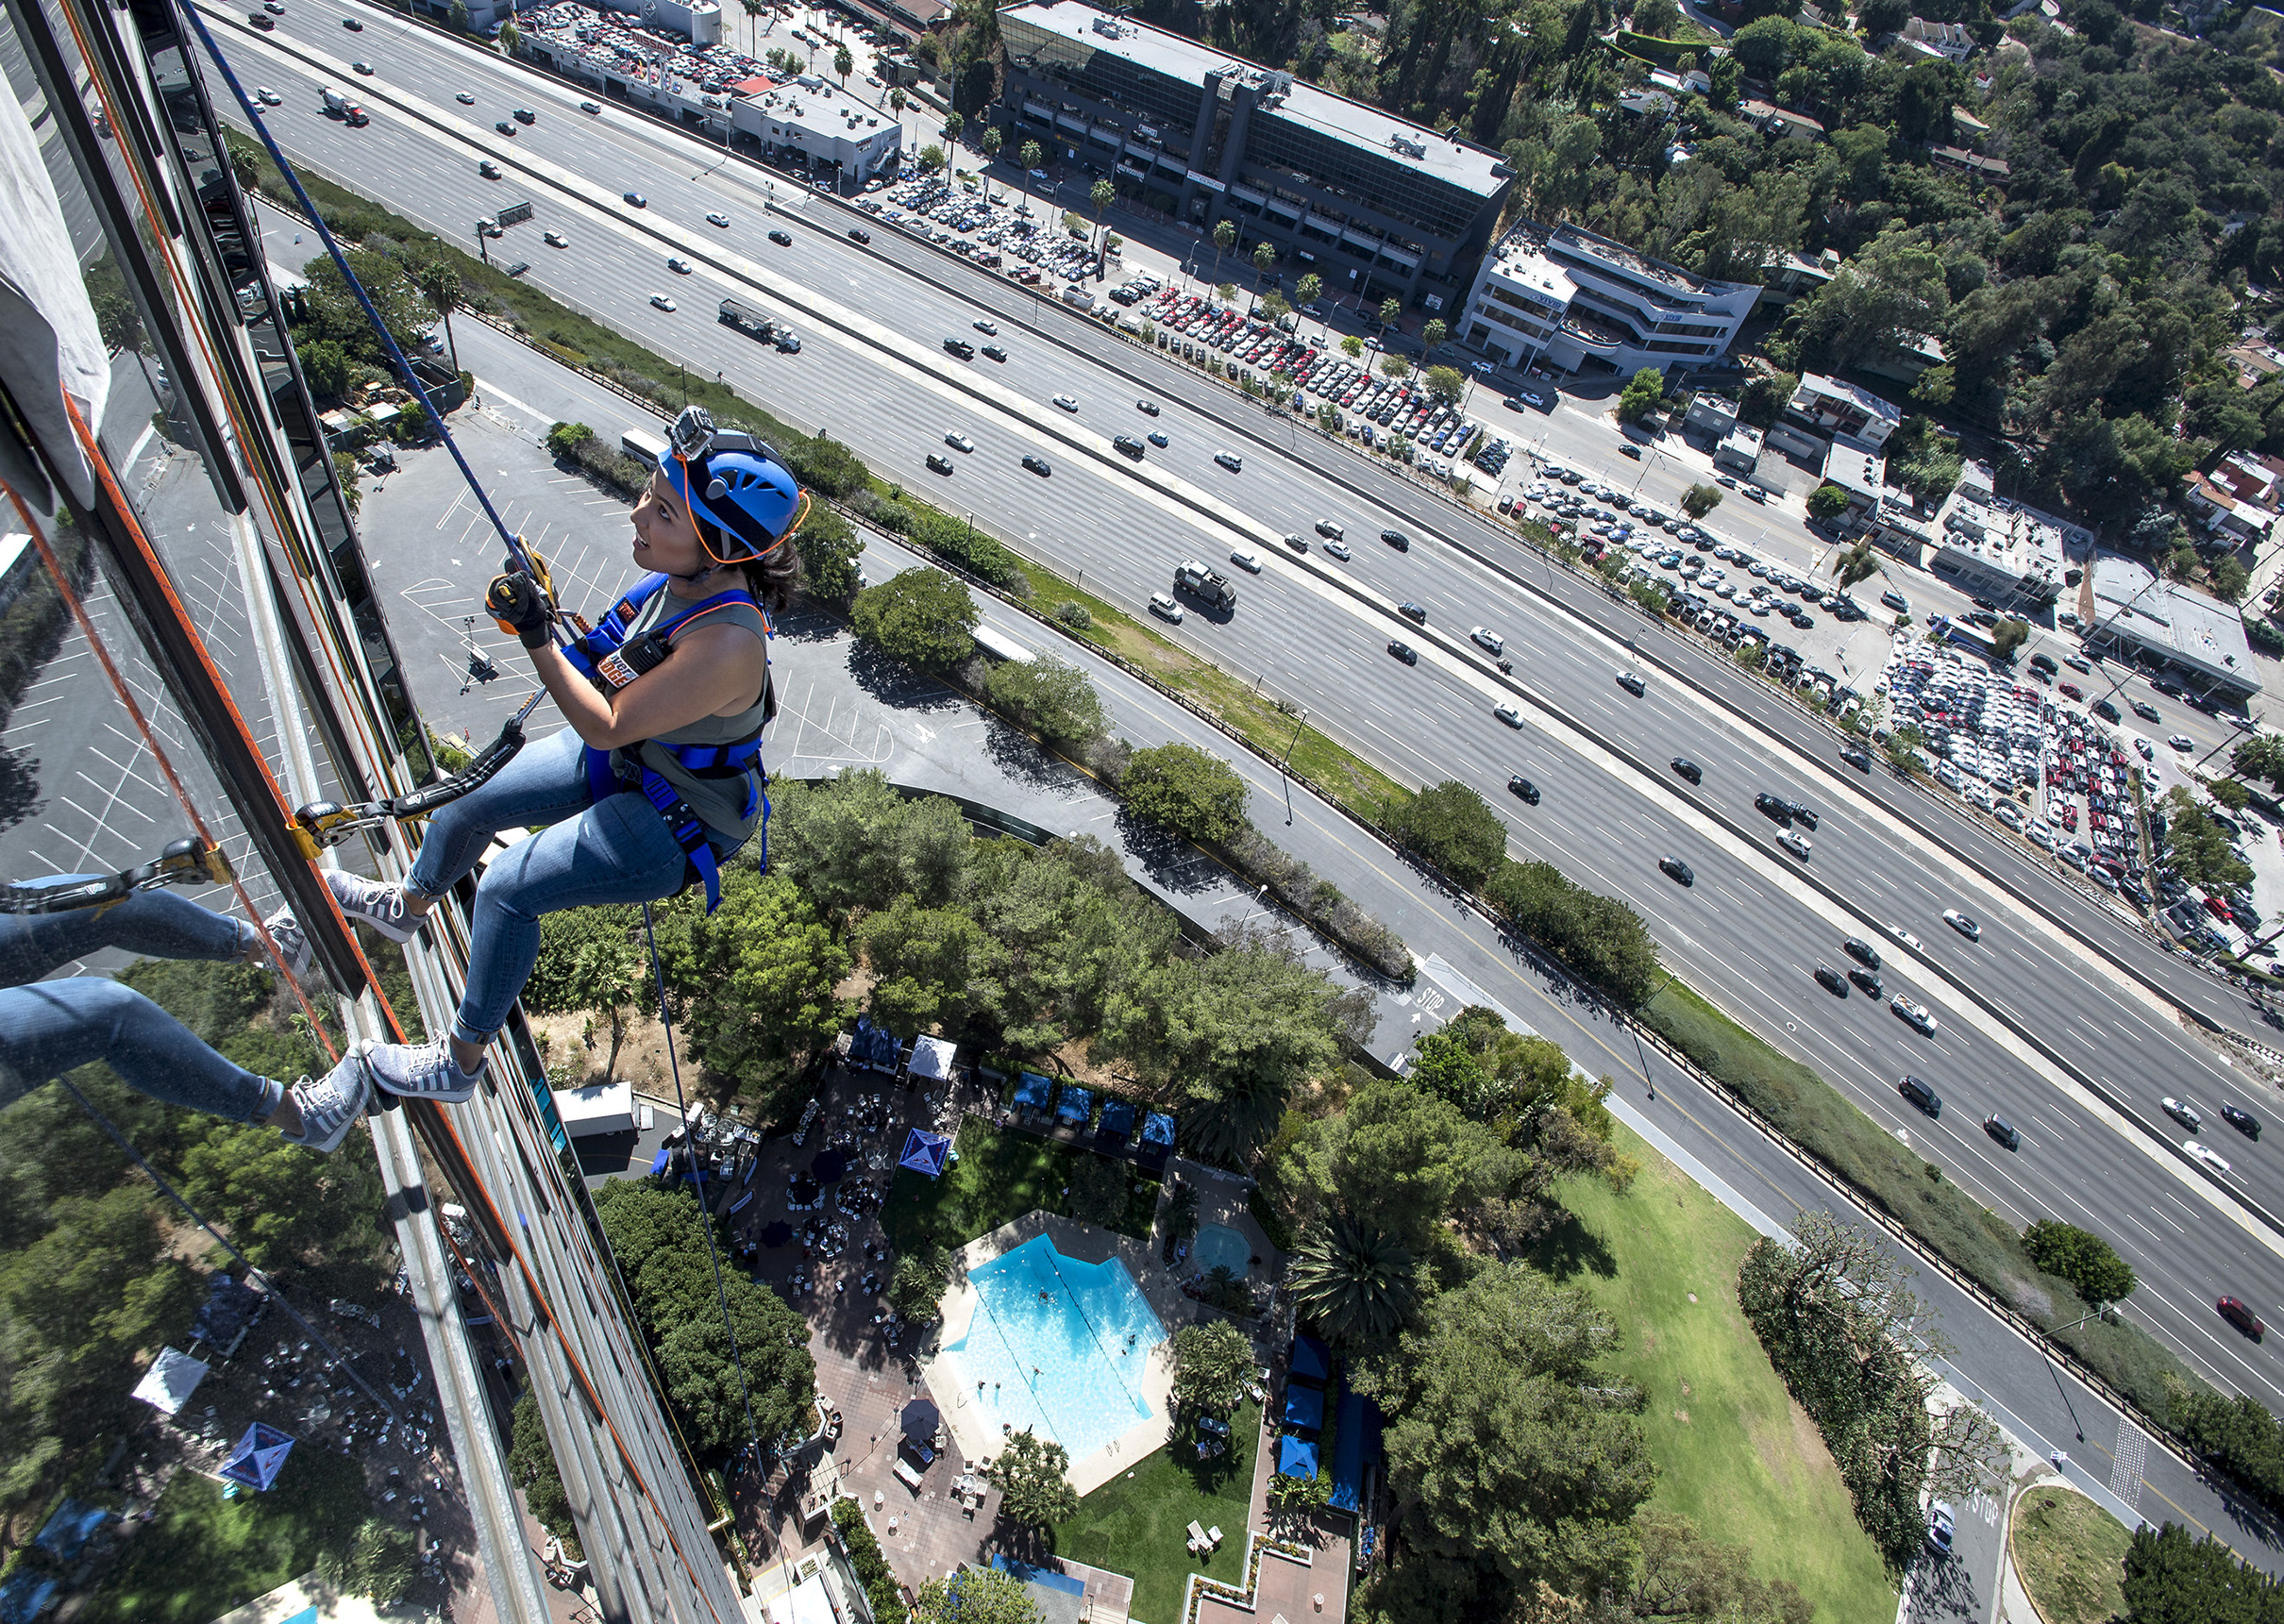 Ruby Olmos, of Santa Clarita, rappels over the edge at the Universal City Hilton Hotel to raise funds for Homes 4 Families in Universal City on Saturday, Oct. 07, 2017. Homes 4 Families' mission is to build resiliency, economic growth, neighborhoods, and homes for veteran families according to press release.